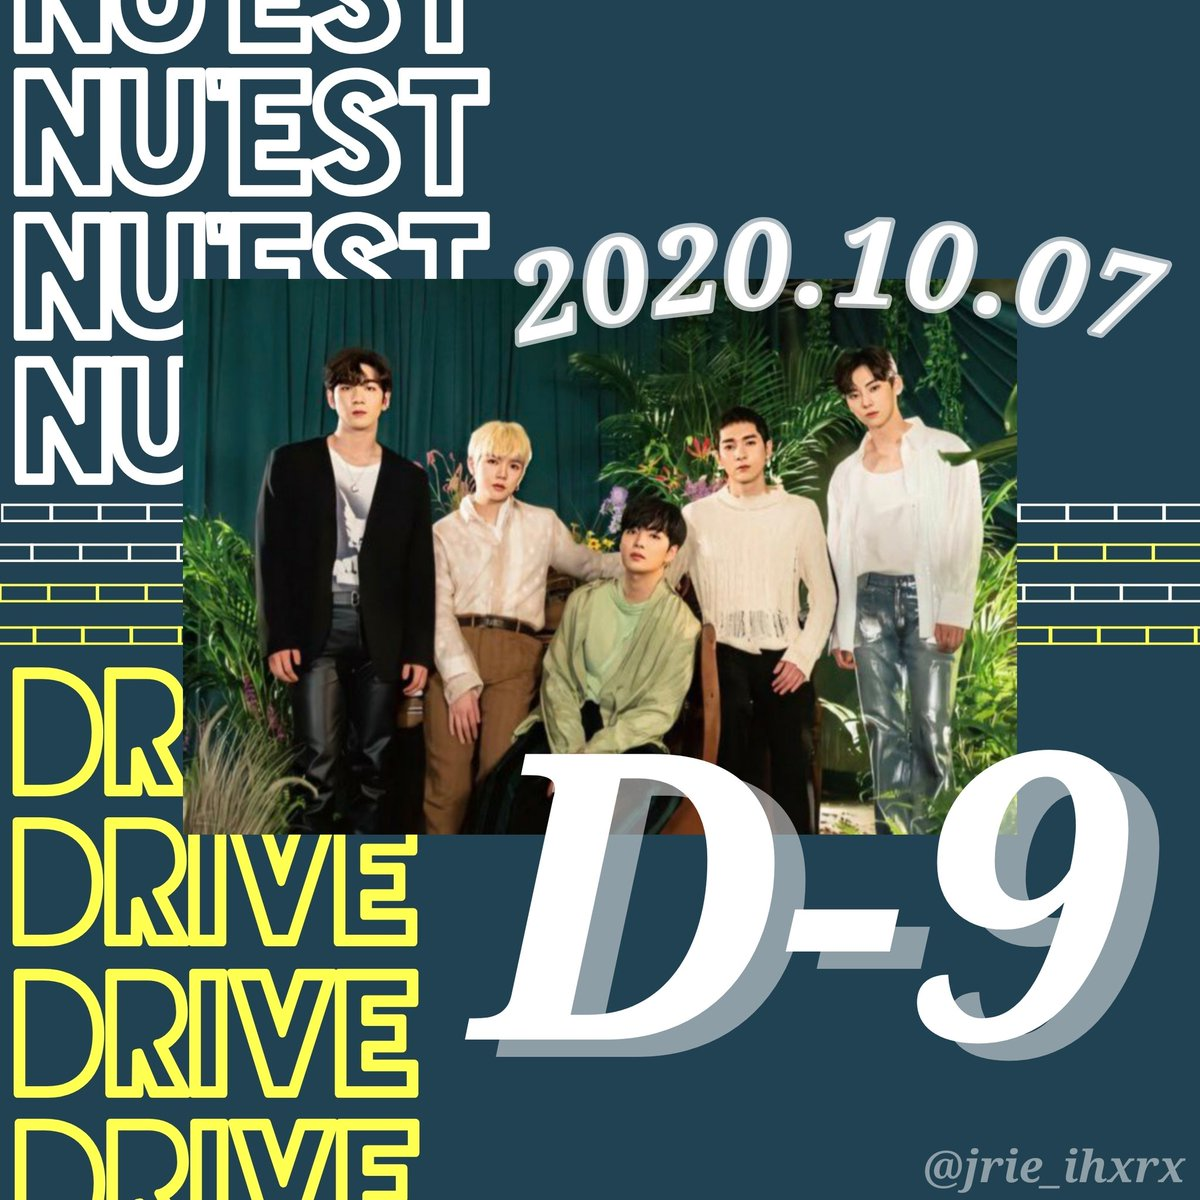 """Loves❤ The Japanese comeback """"Drive"""" is coming up, we have to start promoting the comeback on our own  We can promote it with images along with the HT #NUEST_DRIVE and the return date """"October 07""""  > Don't forget to mention the guys > You can use the picture below ^^ https://t.co/4r331Tsjg9"""